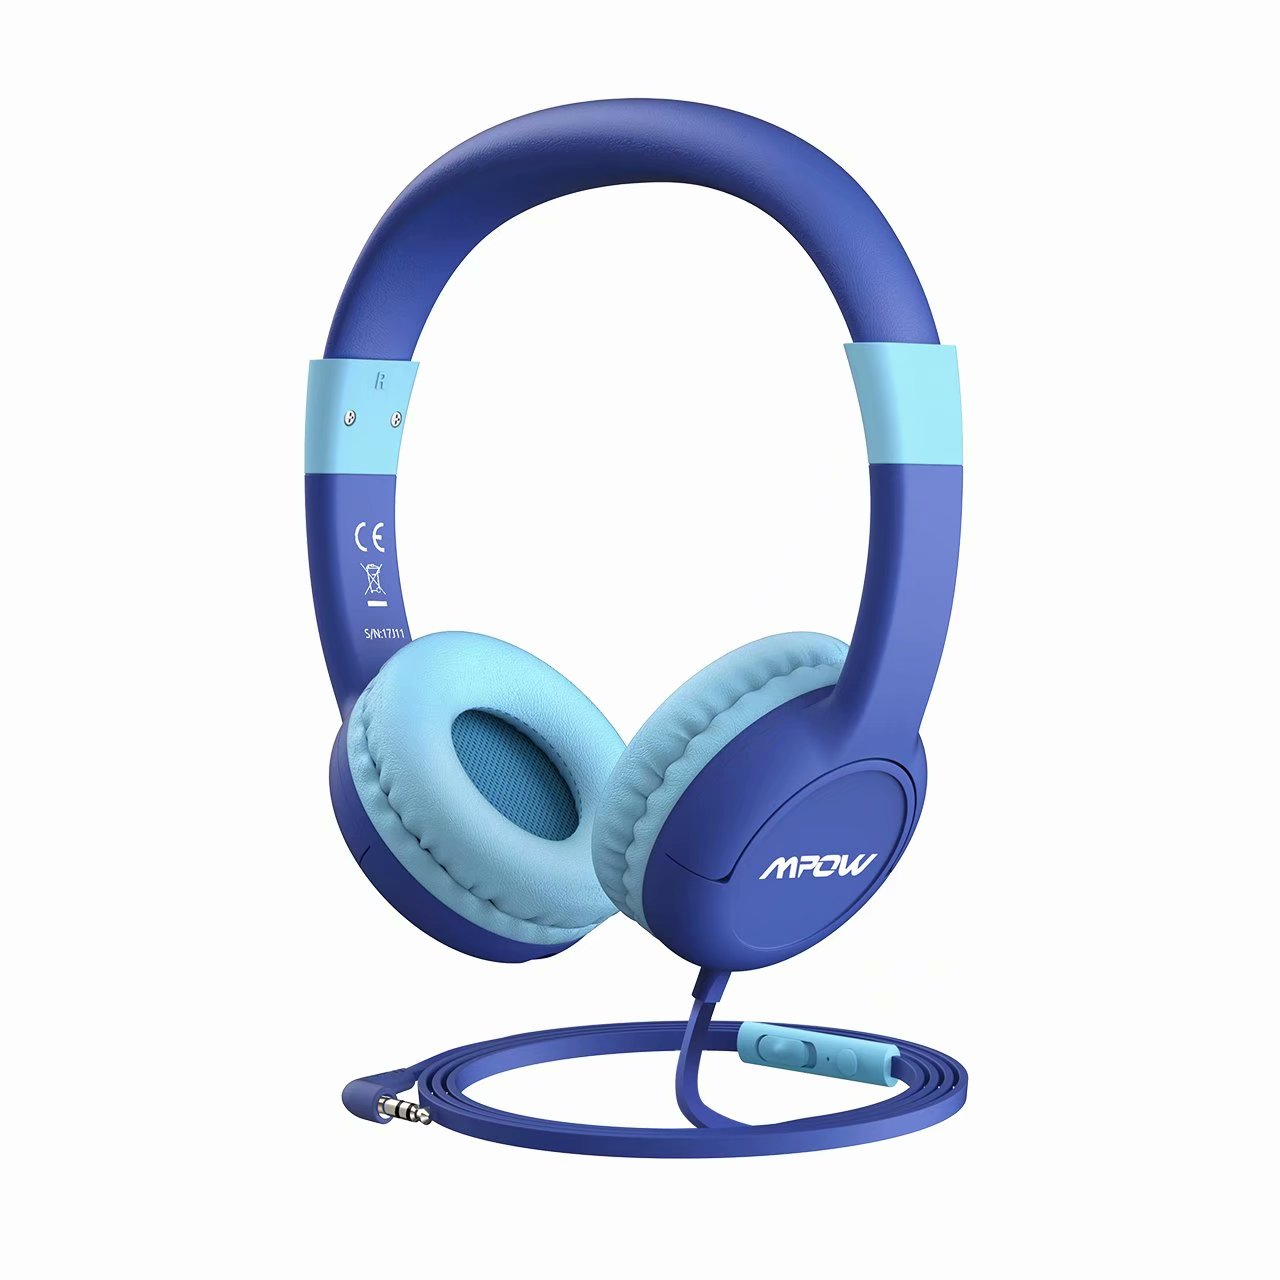 Mpow Kids Headphone with 85dB Volume Limited Hearing Protection & Volume and Mic Control, Music Sharing Function, Safe Food Grade Material, 3.5mm Audio Jack Wired On-Ear Headphones for Children (Blue)